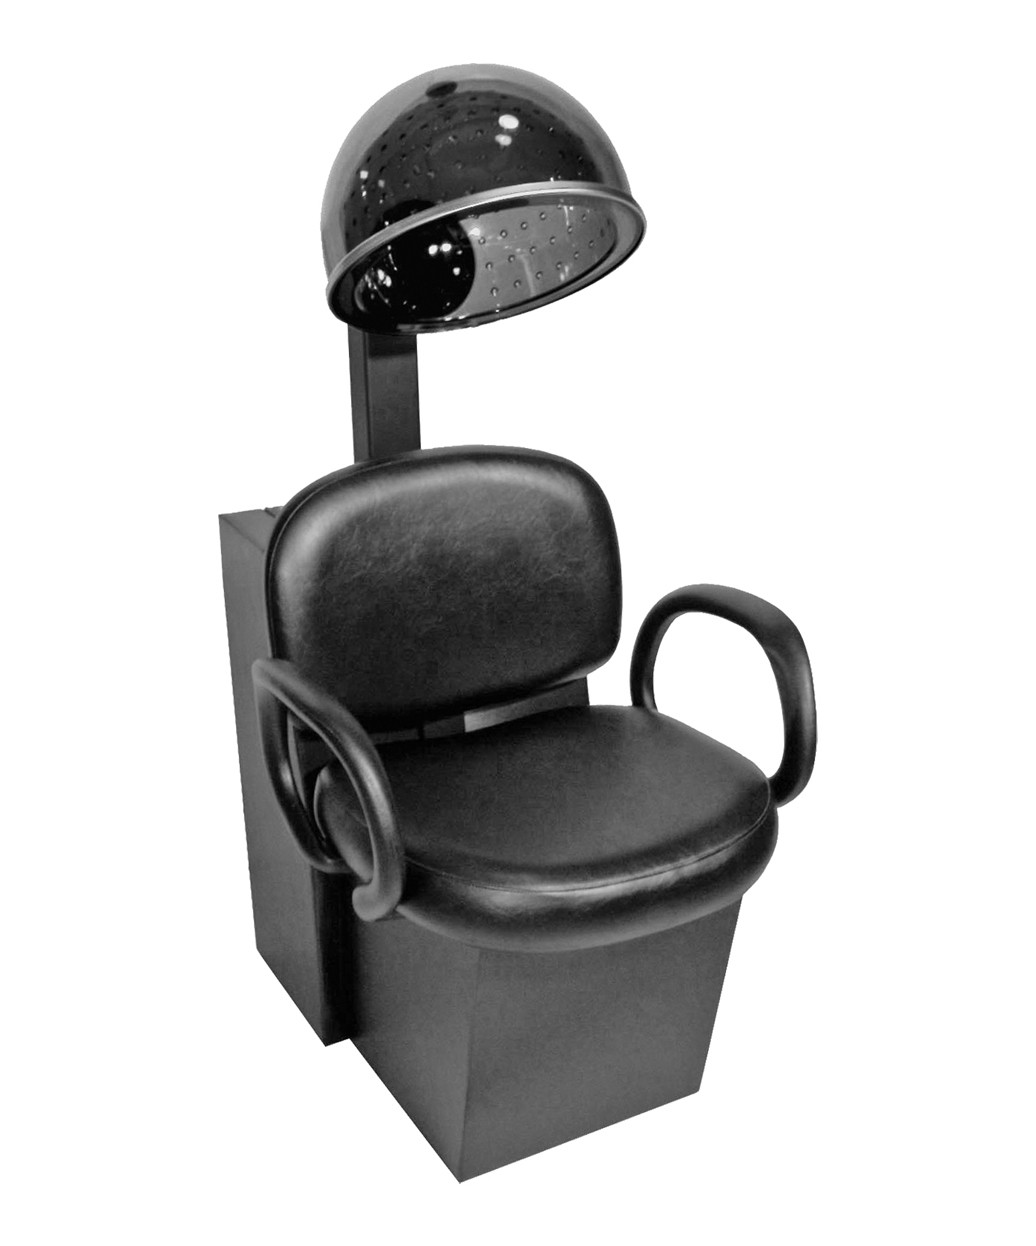 Groovy Collins Qse 1620 Kiva Dryer Chair Caraccident5 Cool Chair Designs And Ideas Caraccident5Info